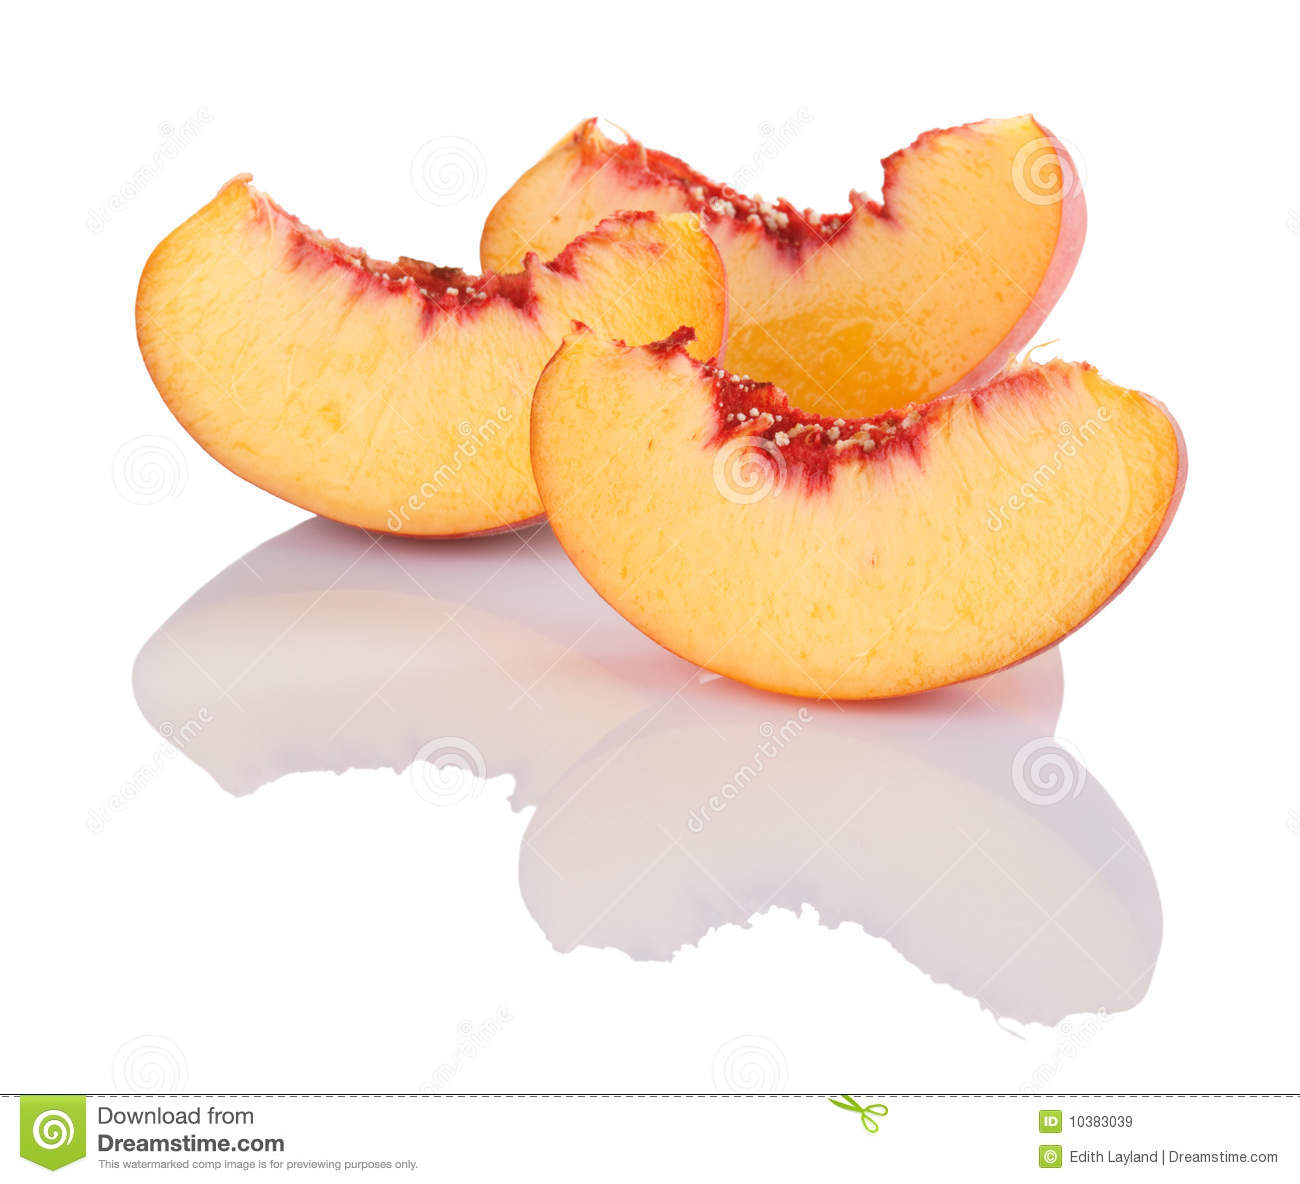 Peach Slices Royalty Free Stock Images - Image: 10383039